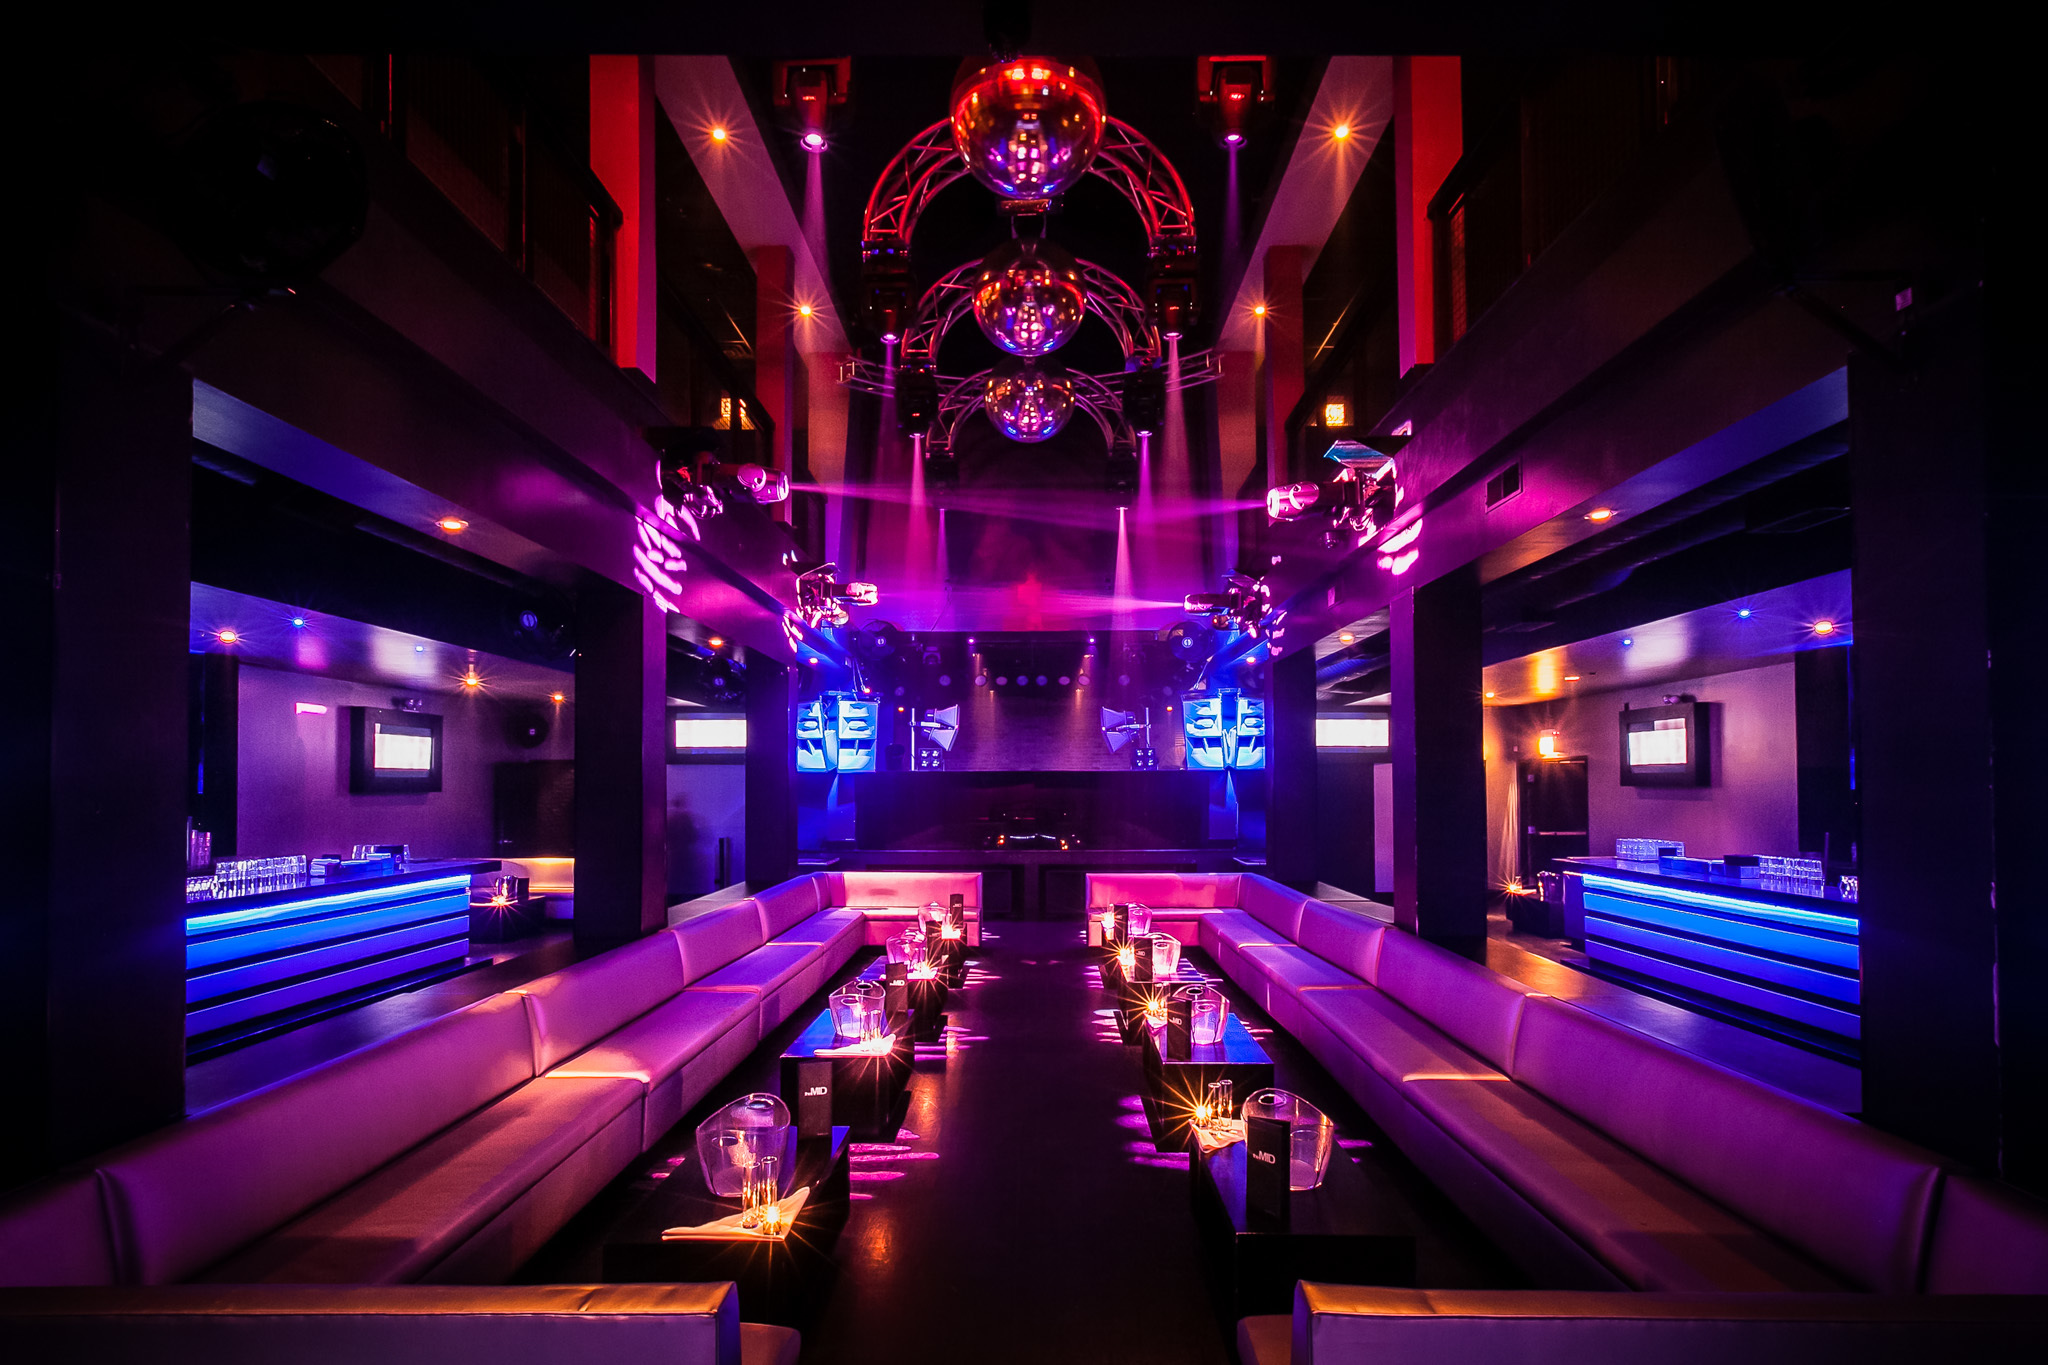 Cash Pool Banken Dresden 14 Best Nightclubs And Dance Clubs In Chicago